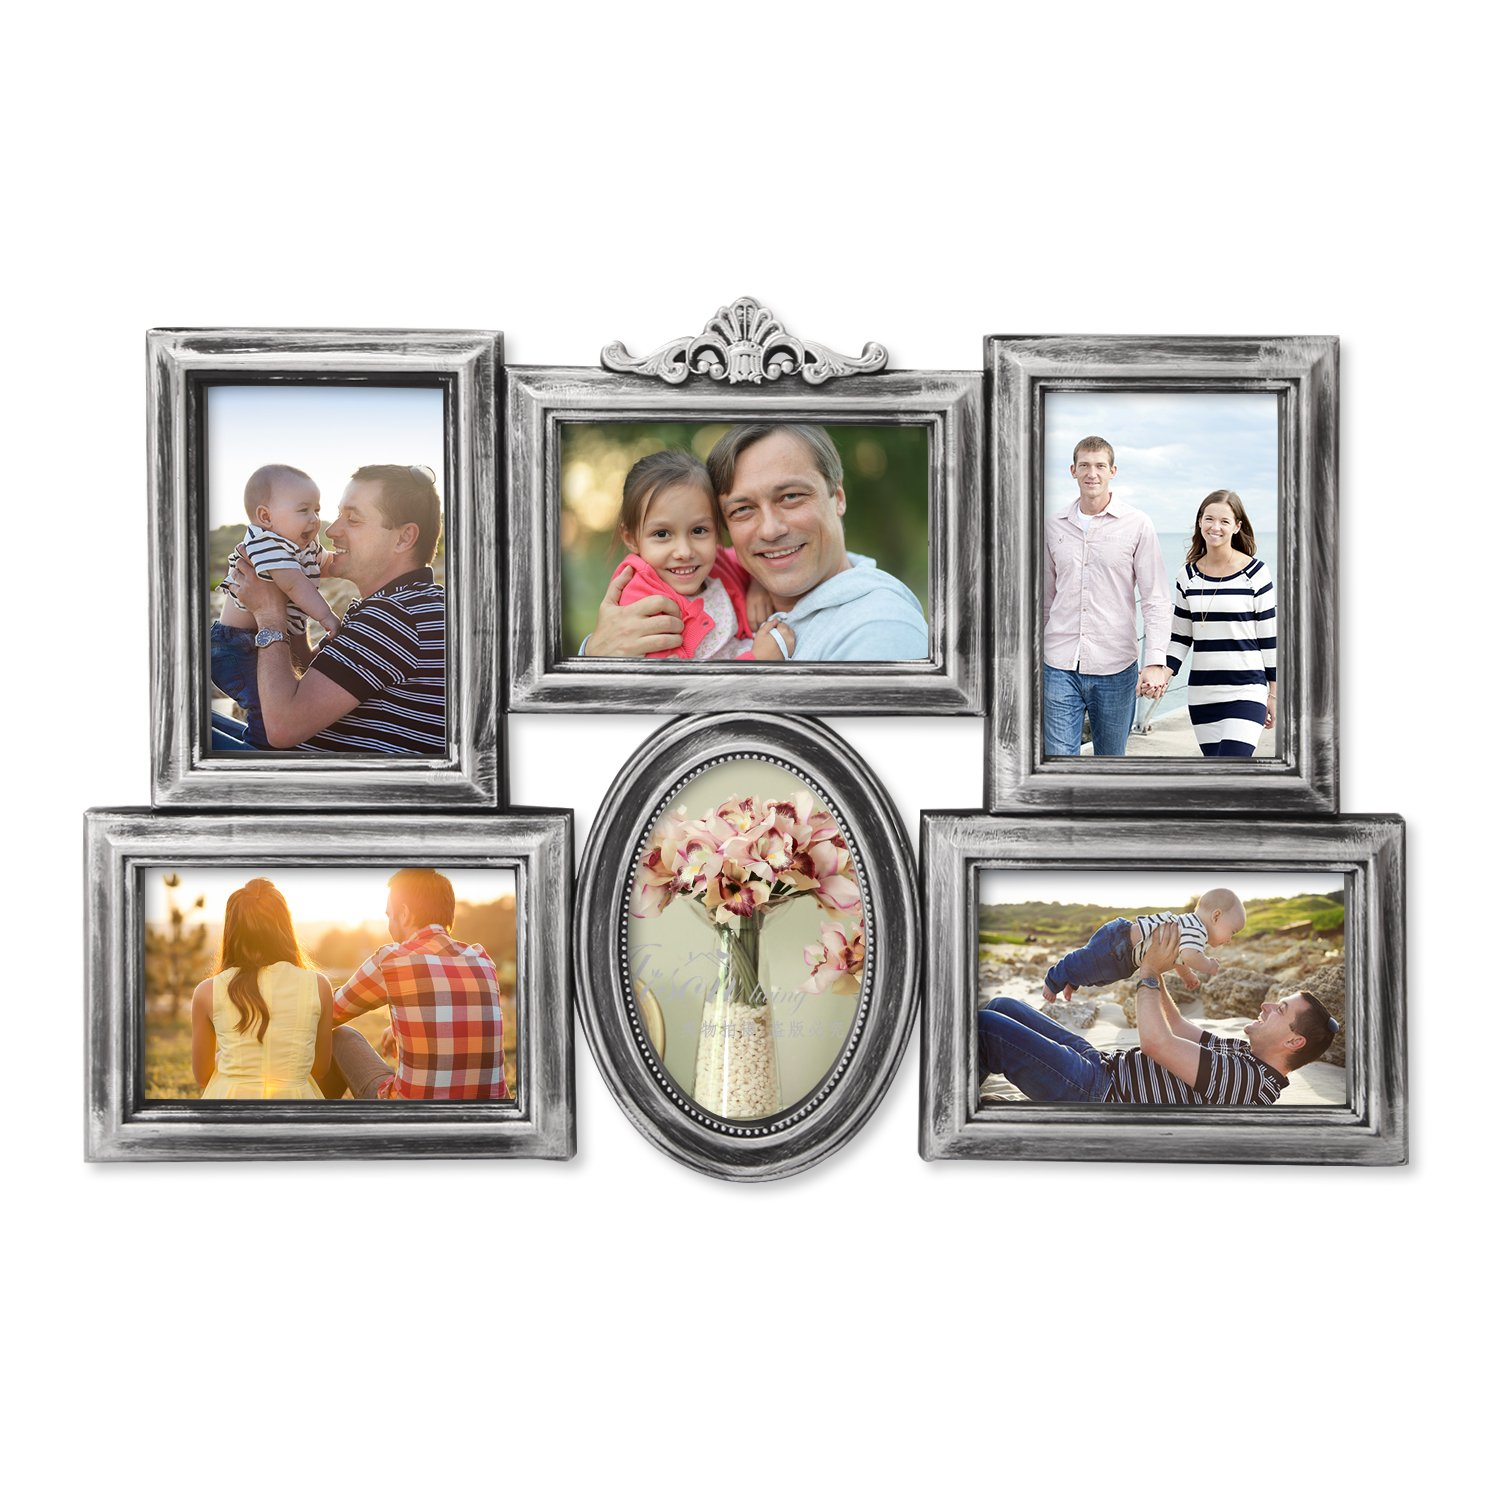 DecentHome Wall Hanging Collage Frame, 4 x 6 Inches (10 Openings Memories) APF-459